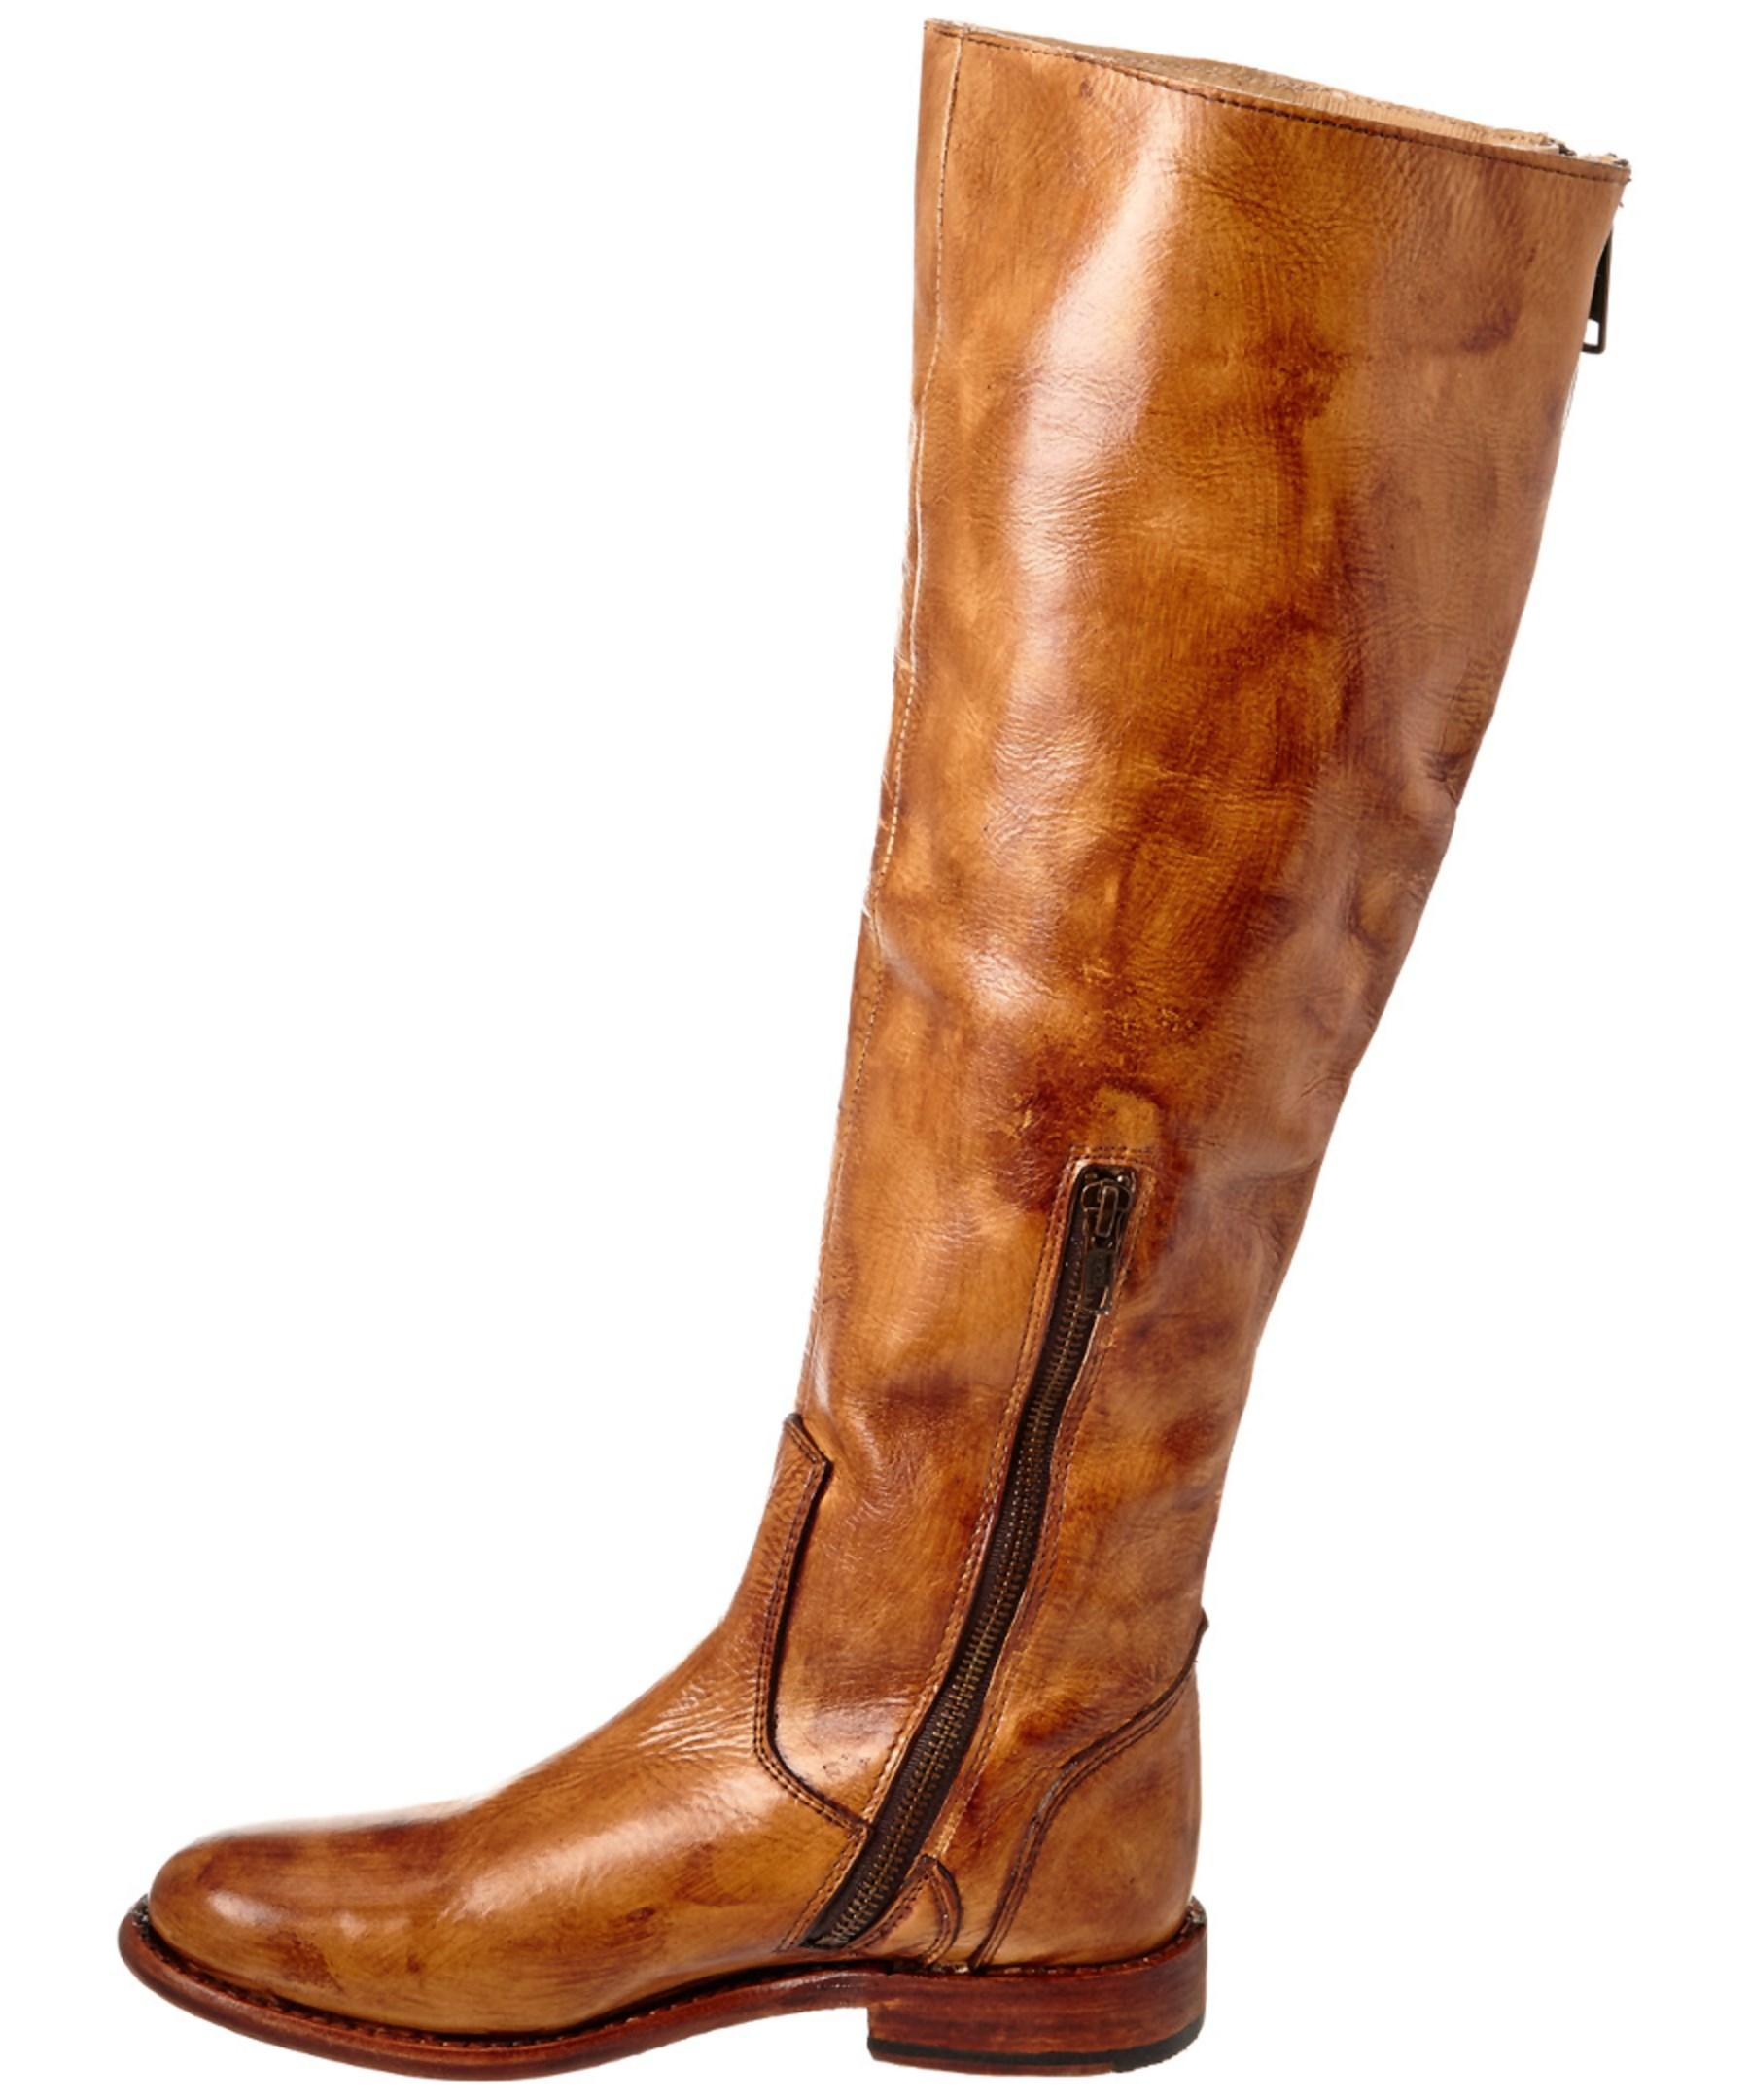 bed stu tess leather boot in brown lyst